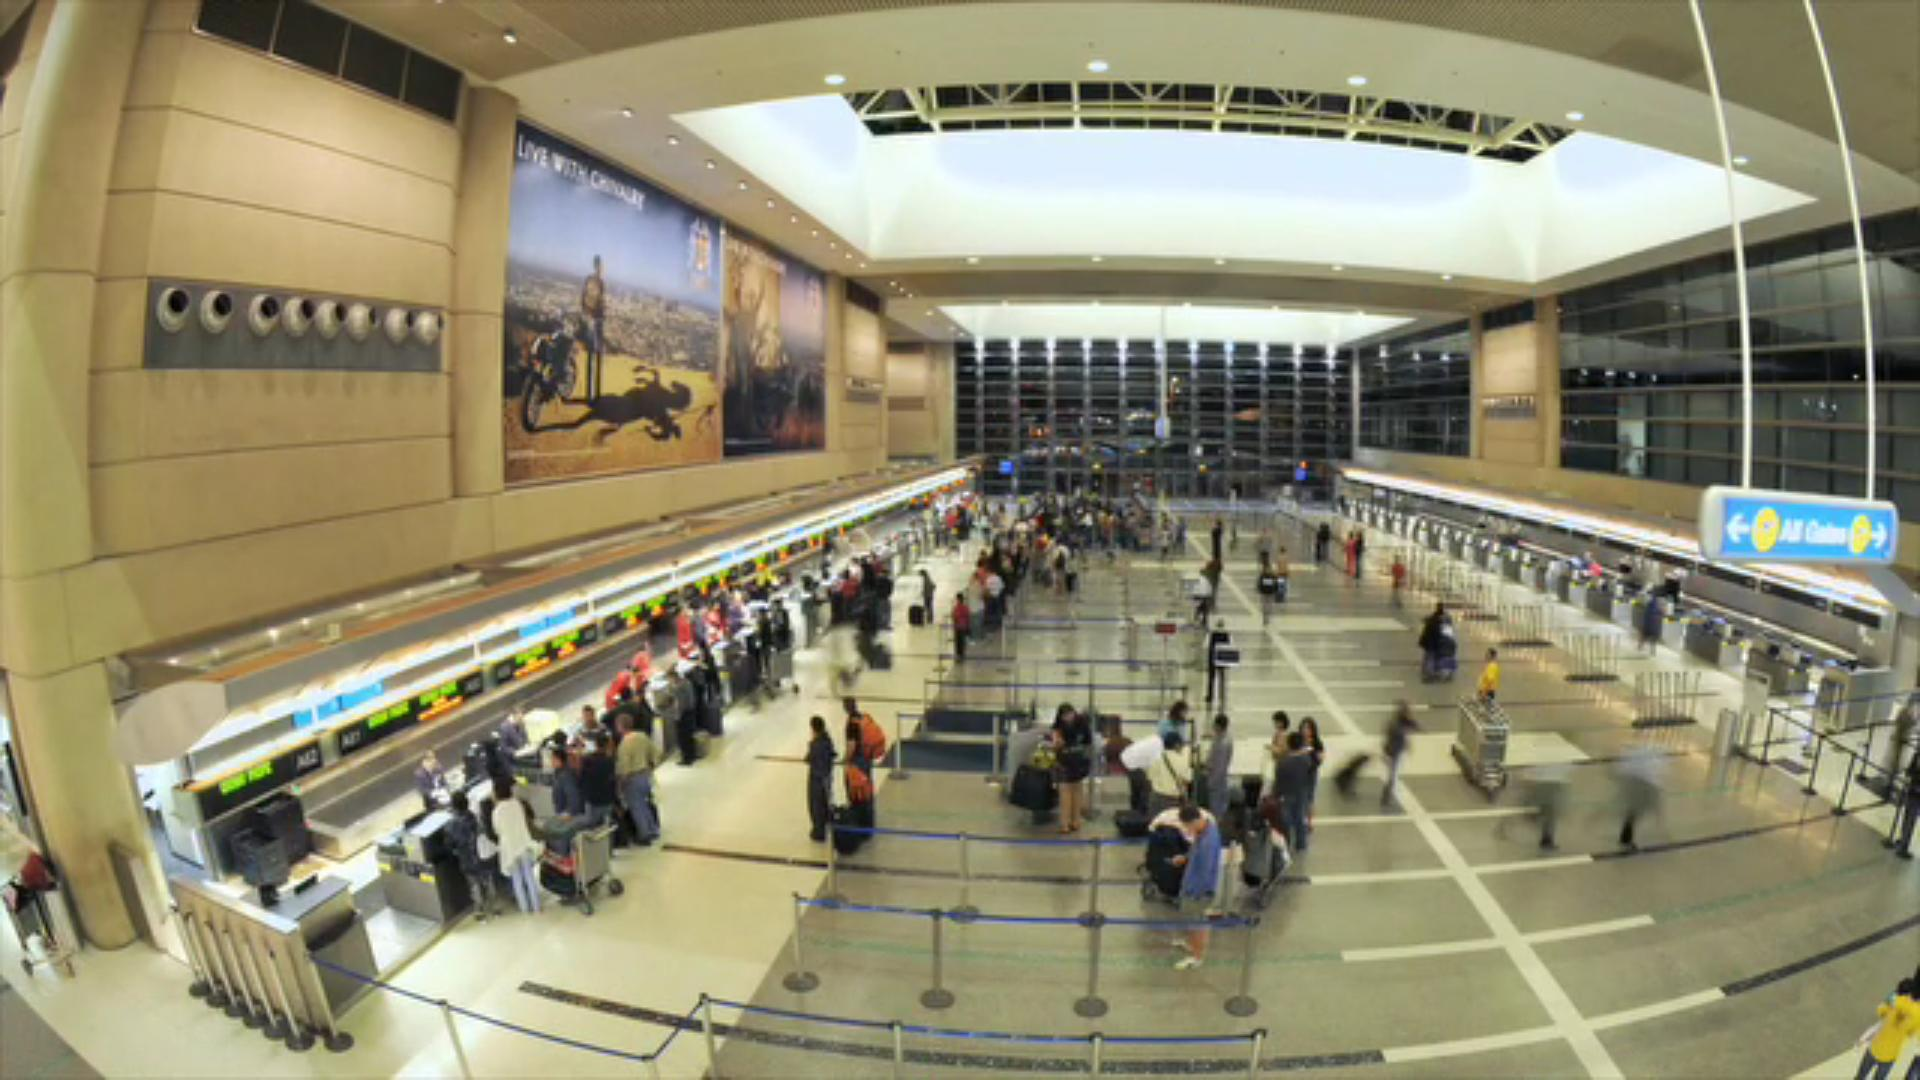 The best tips to get through airport security